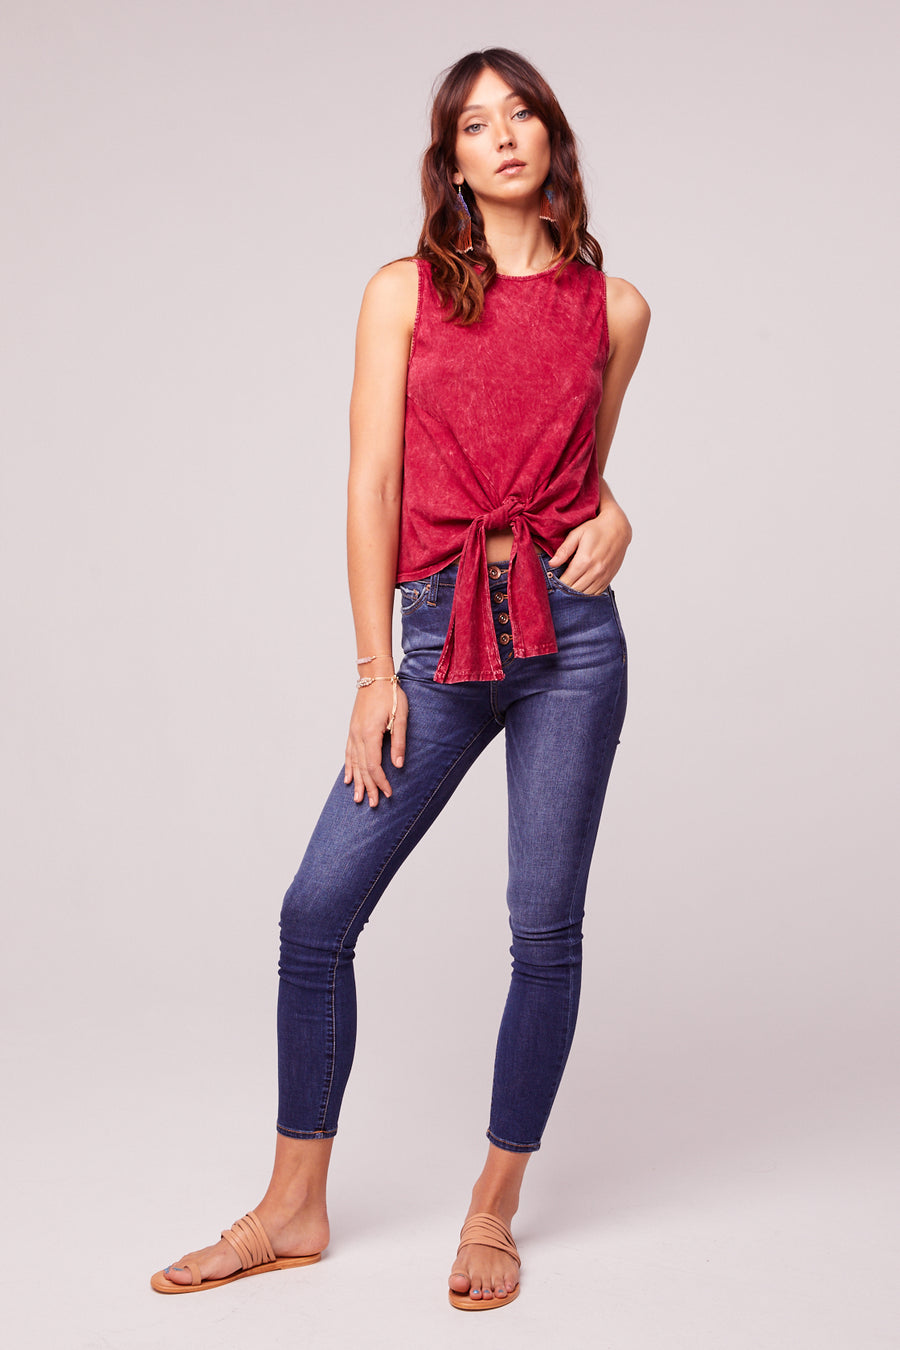 Mineral Washed Red Tie Front Top Master